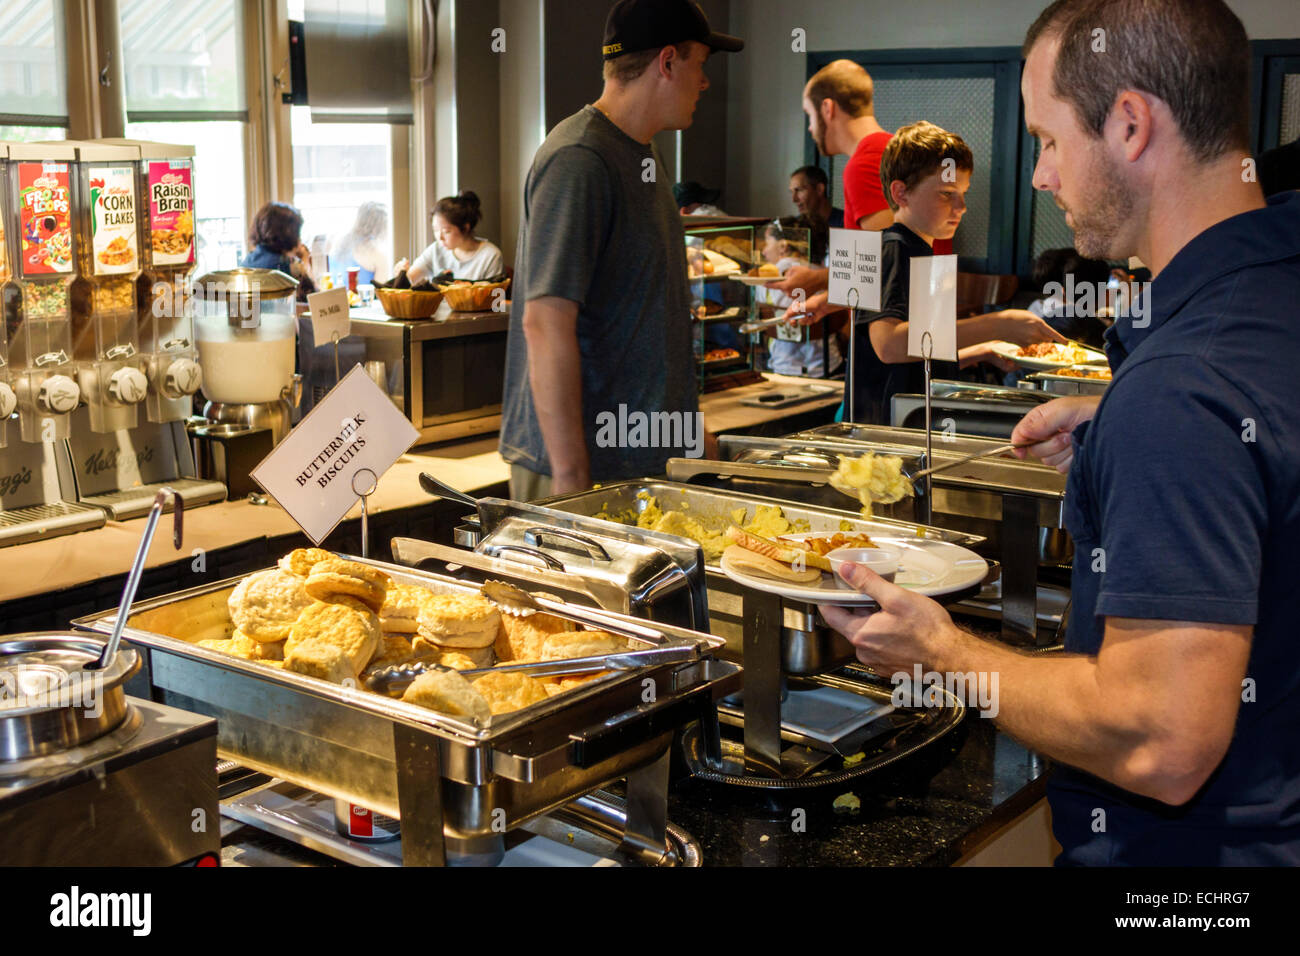 st louis missouri saint clayton crowne plaza hotel chain global rh alamy com breakfast buffet st louis missouri ari's breakfast buffet st. louis